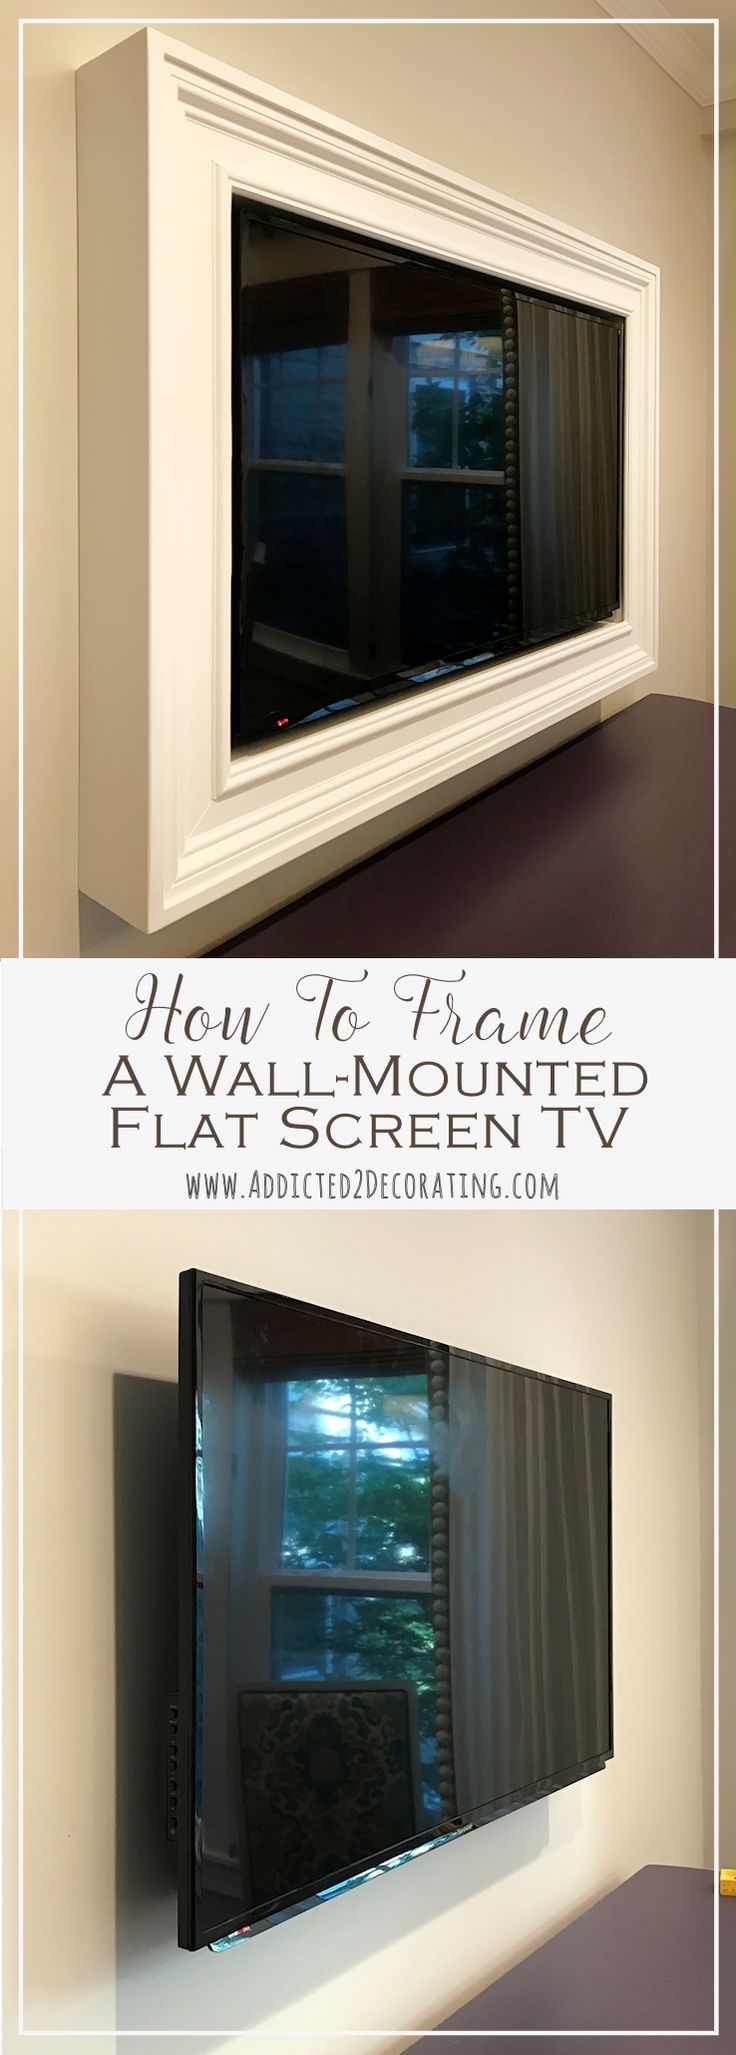 best 25 kitchen tv ideas on pinterest wood mode tv in